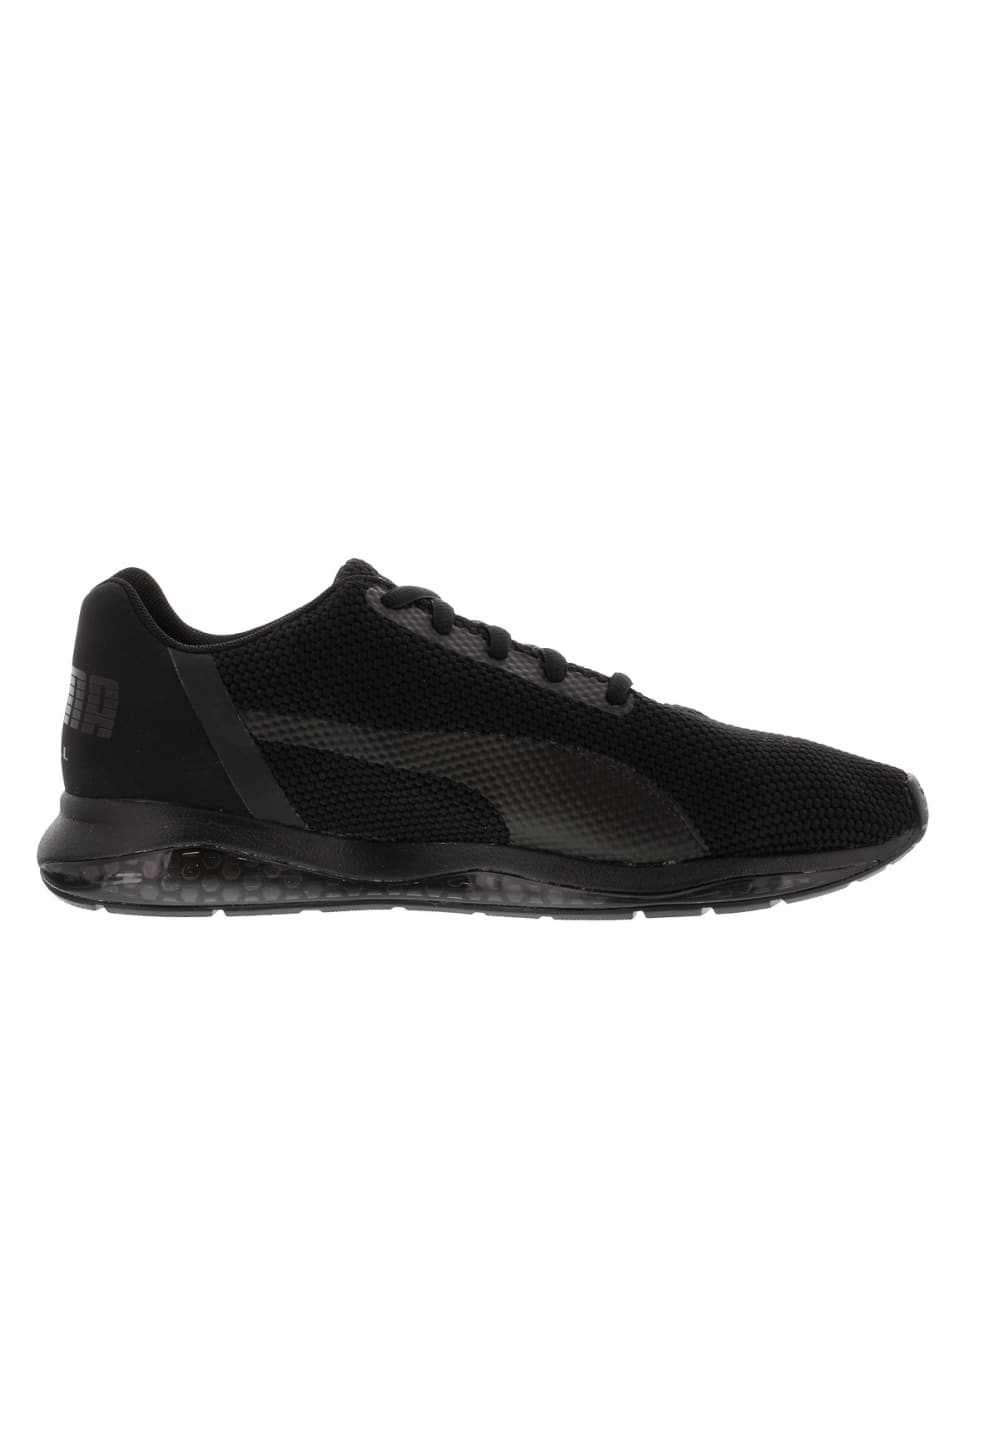 Puma Cell Ultimate Running shoes for Men Black